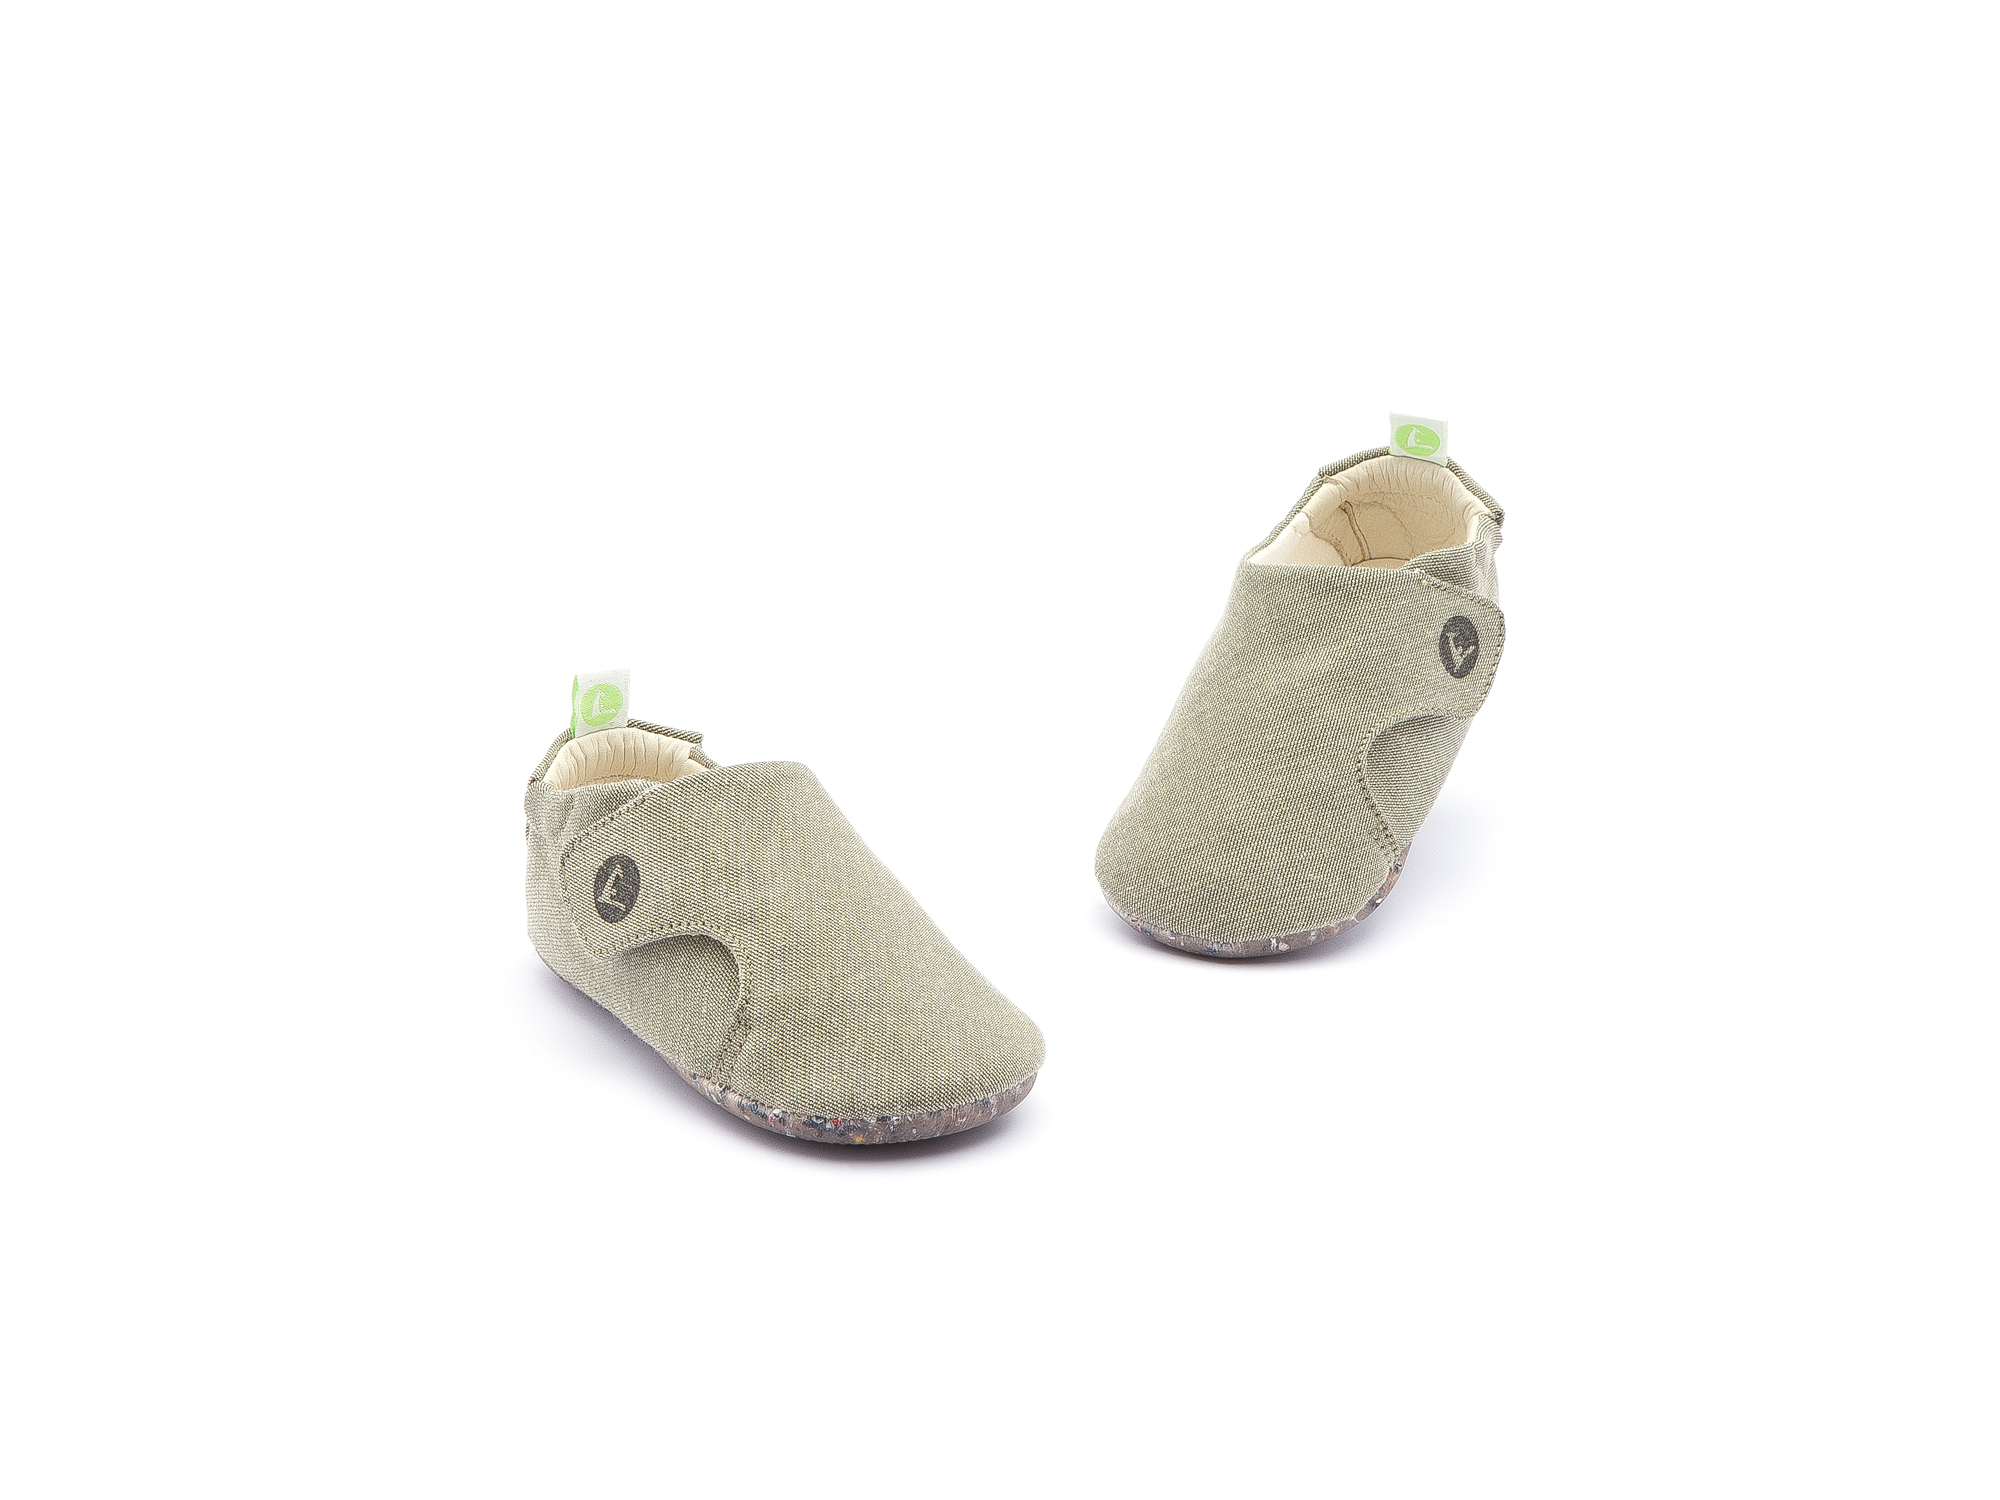 Sneaker Casual Greeny Light Olive Canvas Baby 0 à 2 anos - 4